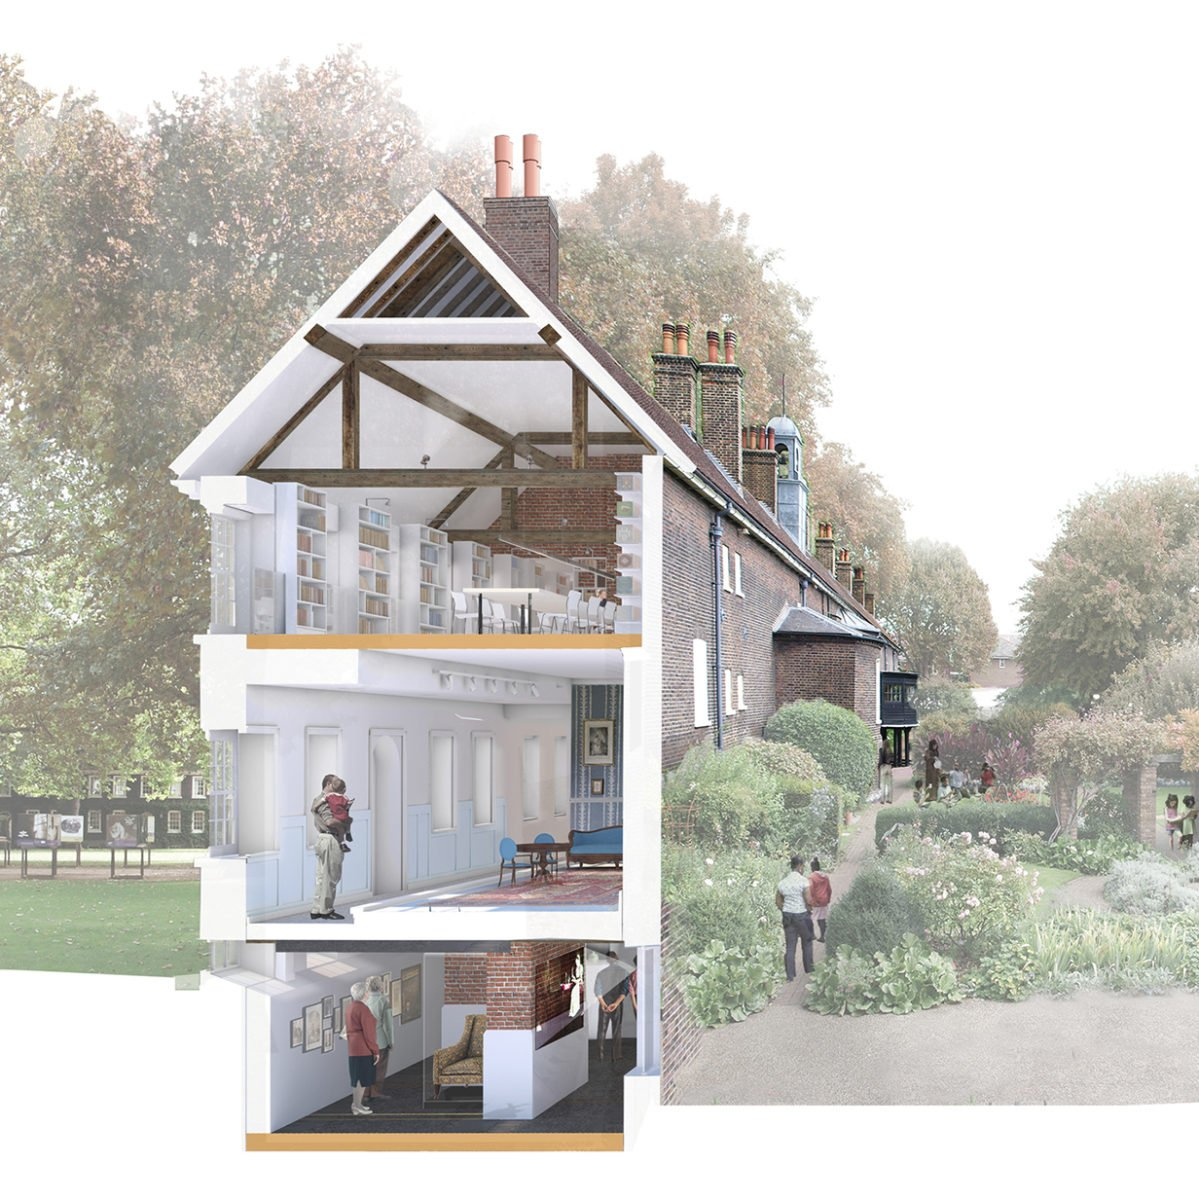 Flint Art Fair 2020.Don T Move Improve The Geffrye Museum Of The Home To